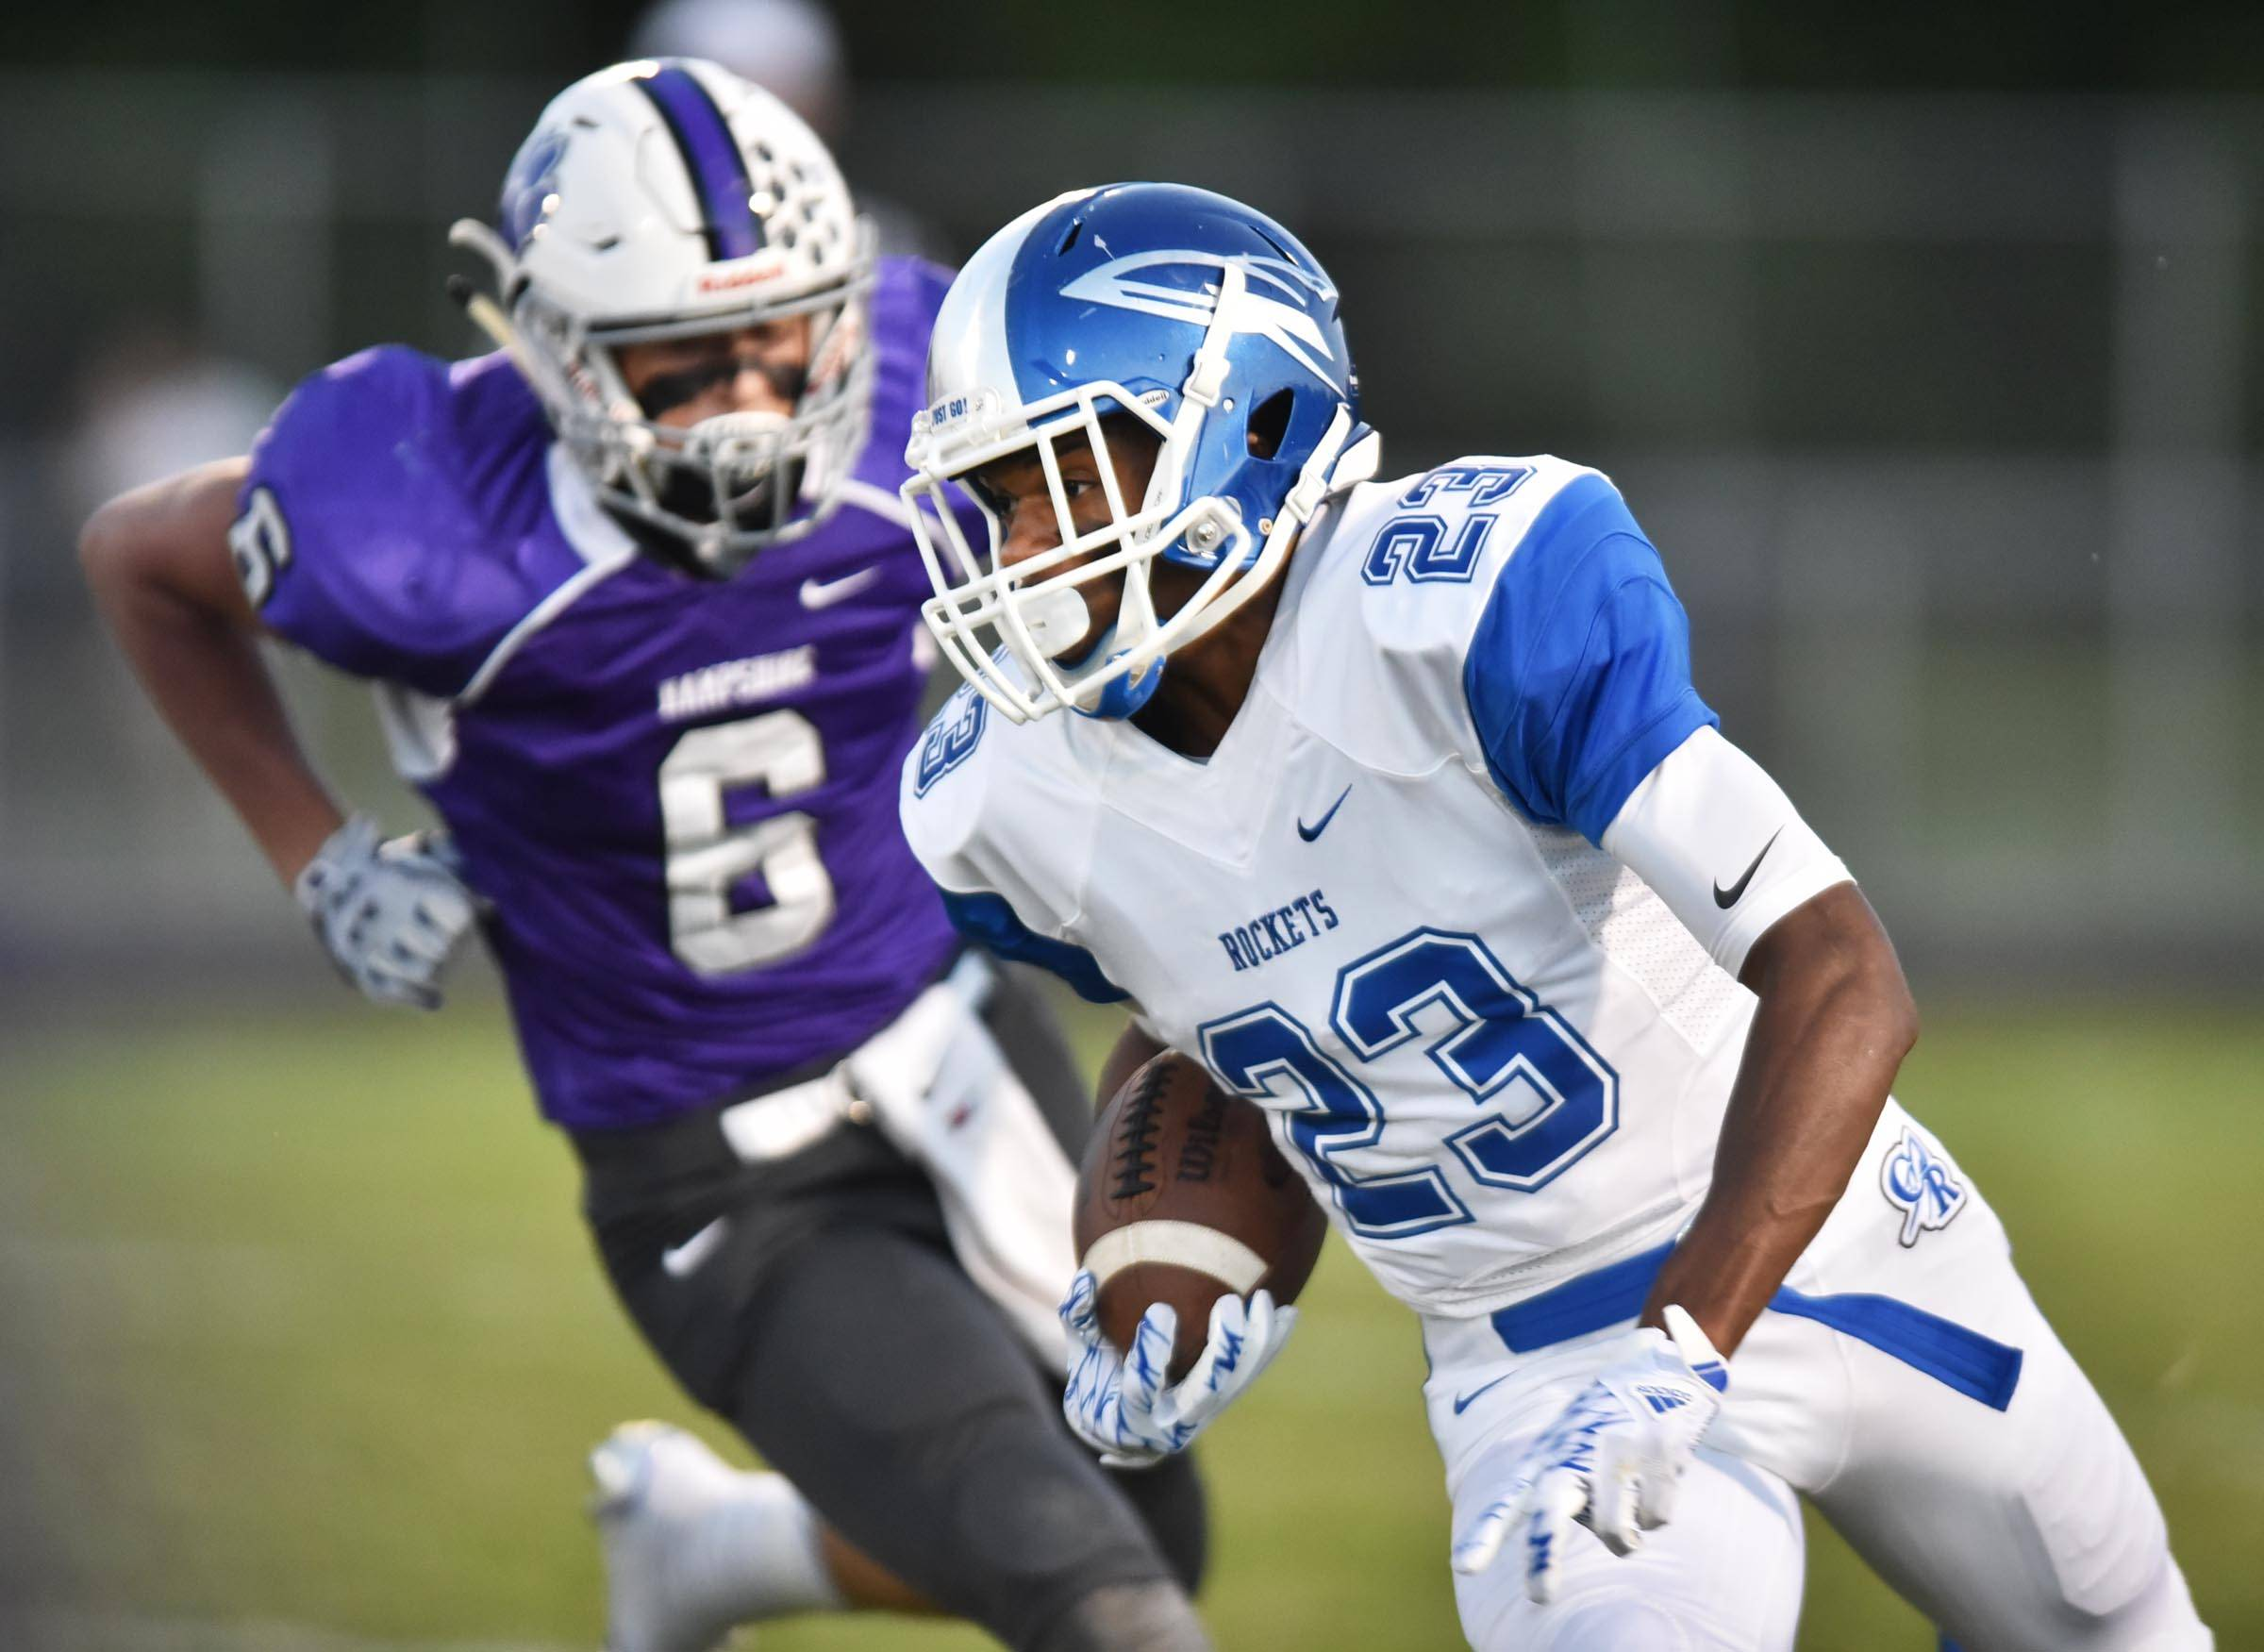 Burlington Central's Dionte Smith is chased by Hampshire's Devin Baldridge Friday in Hampshire.